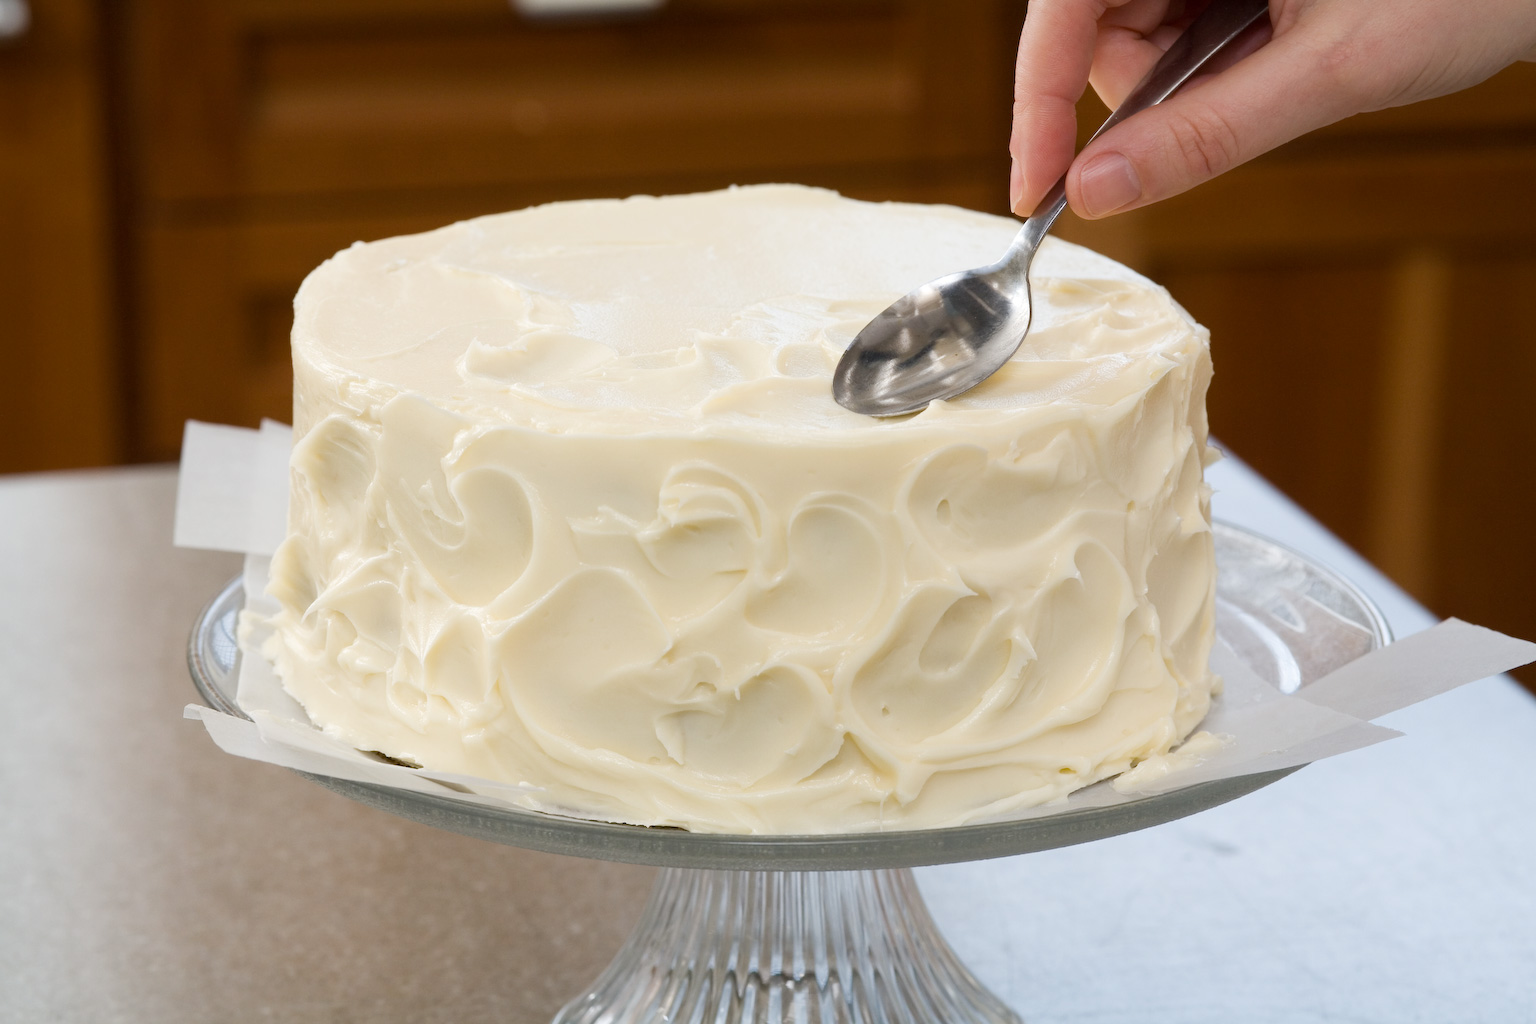 Easy Bake Games: Secrets to Decorating Layer Cakes